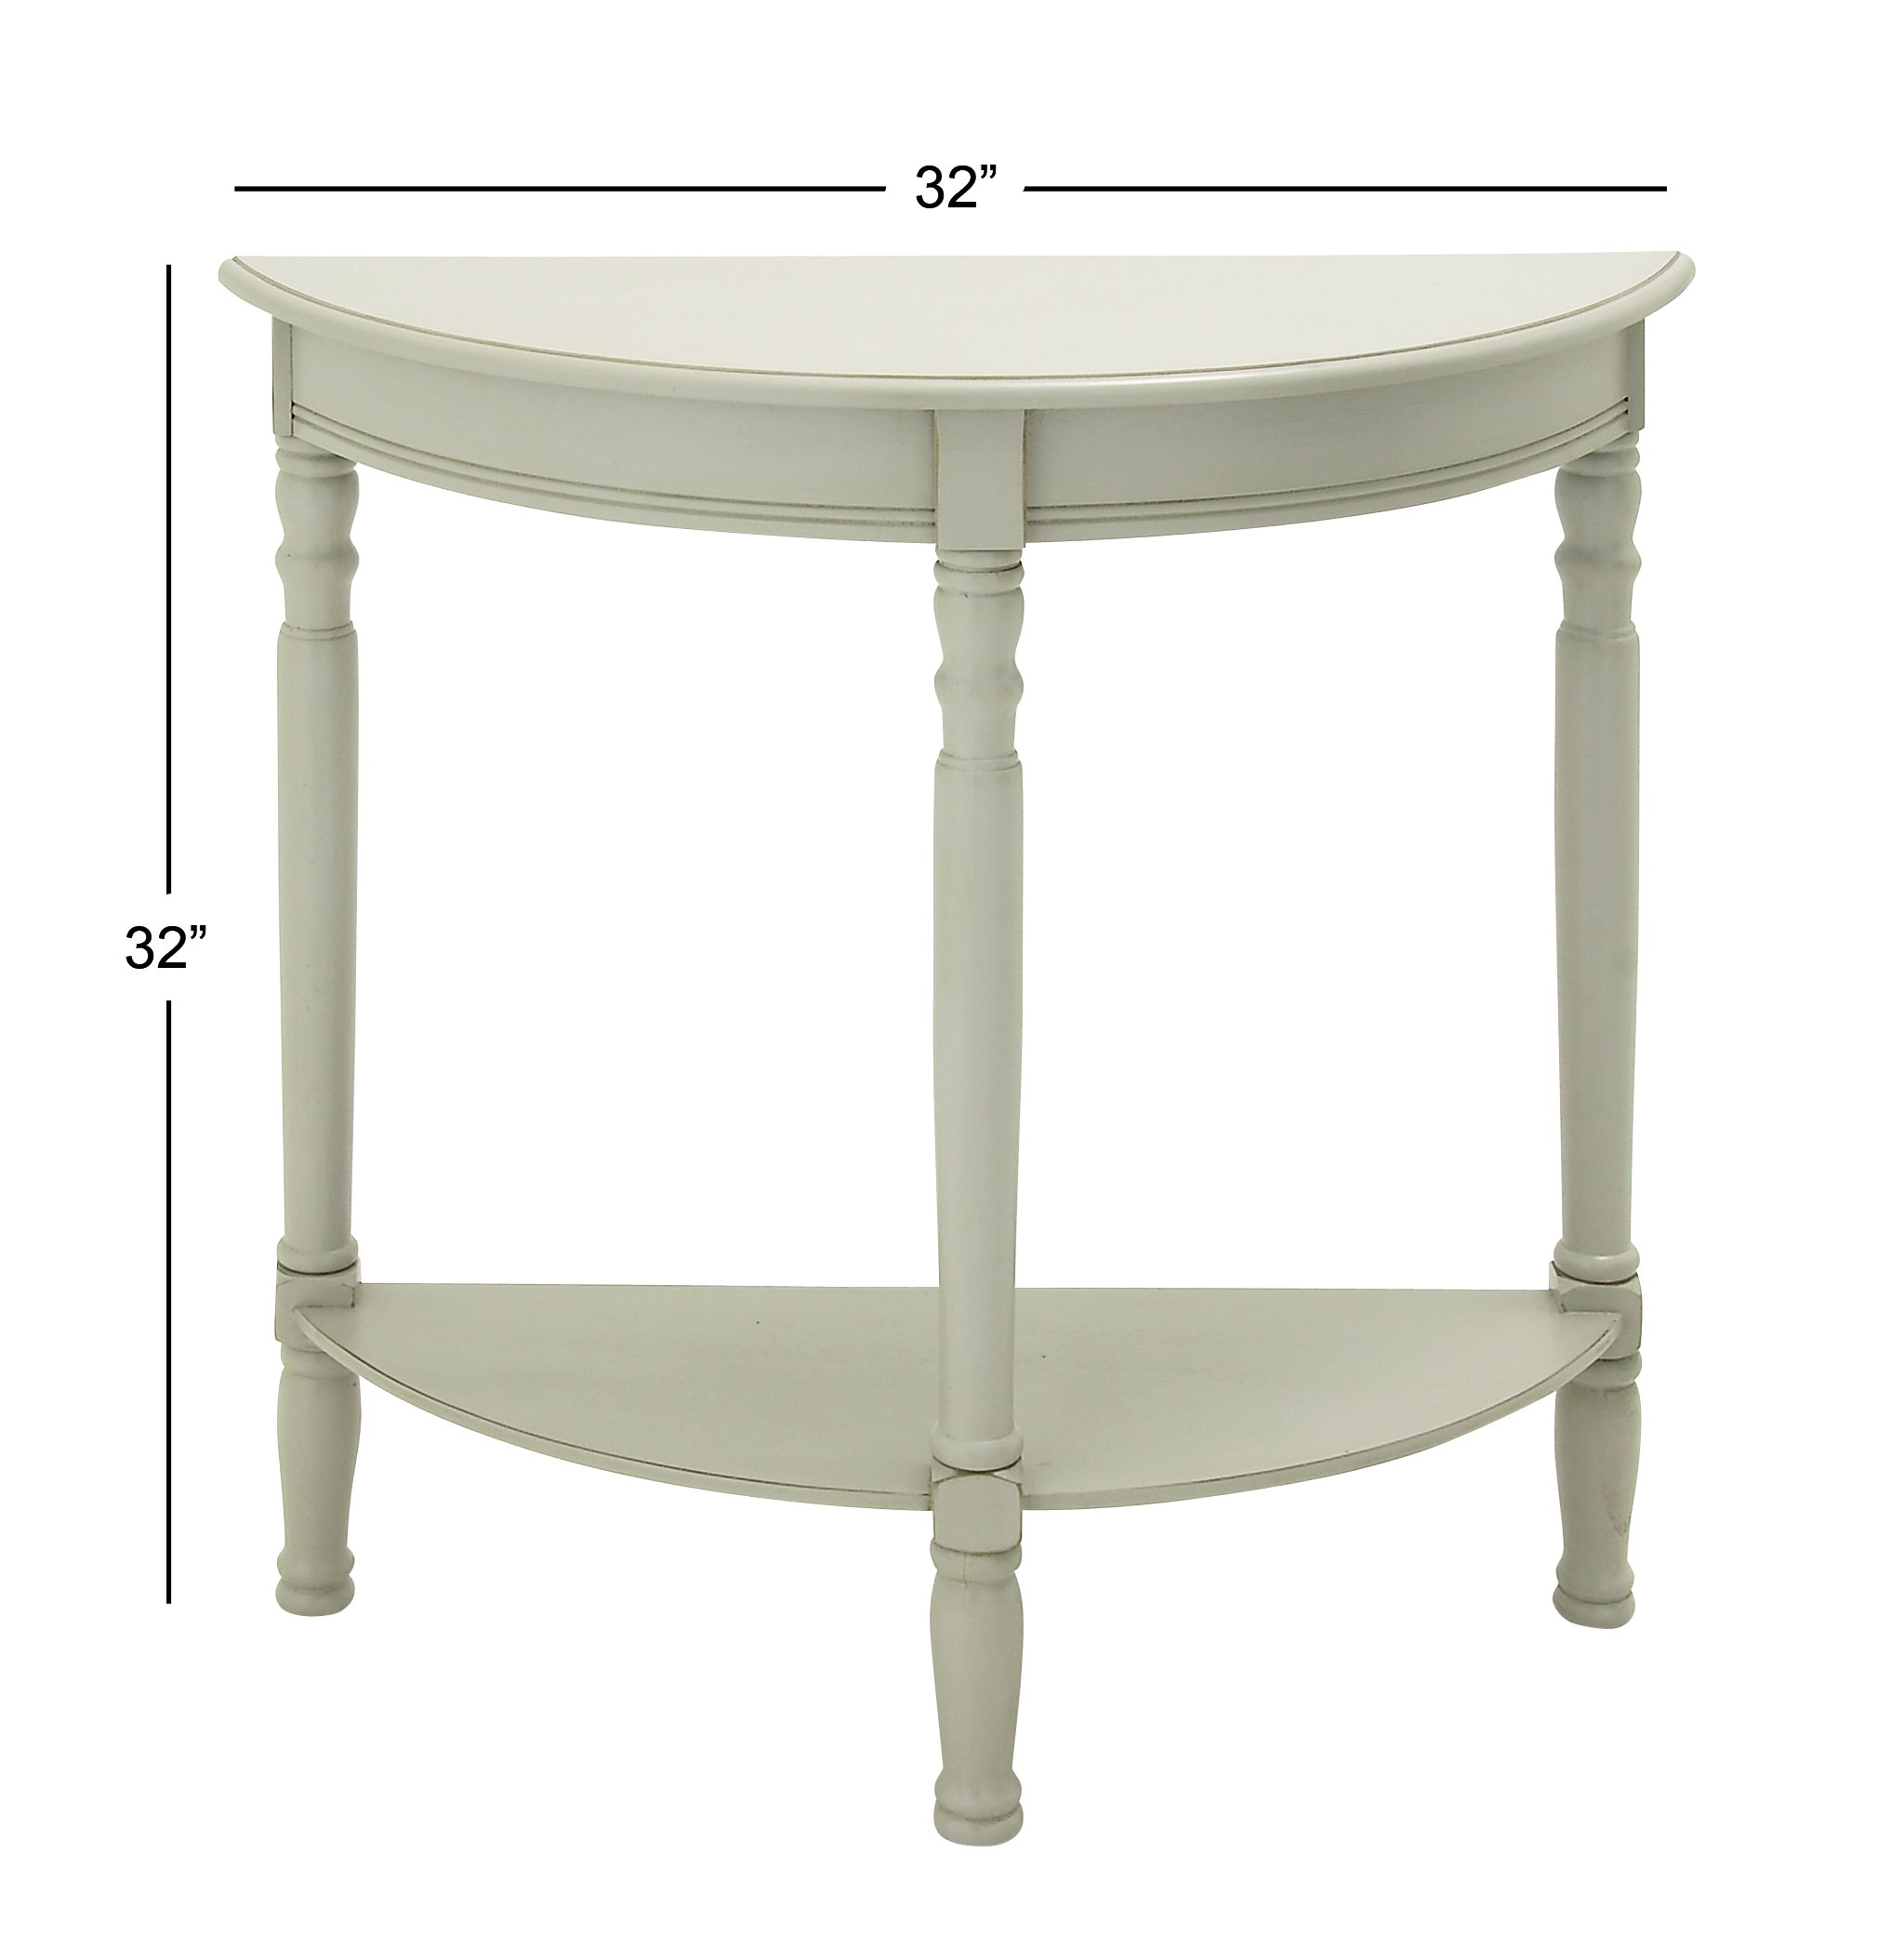 Deco 79 96328 Wood 1/2 Round Console Table, 32'' x 32'', Ivory